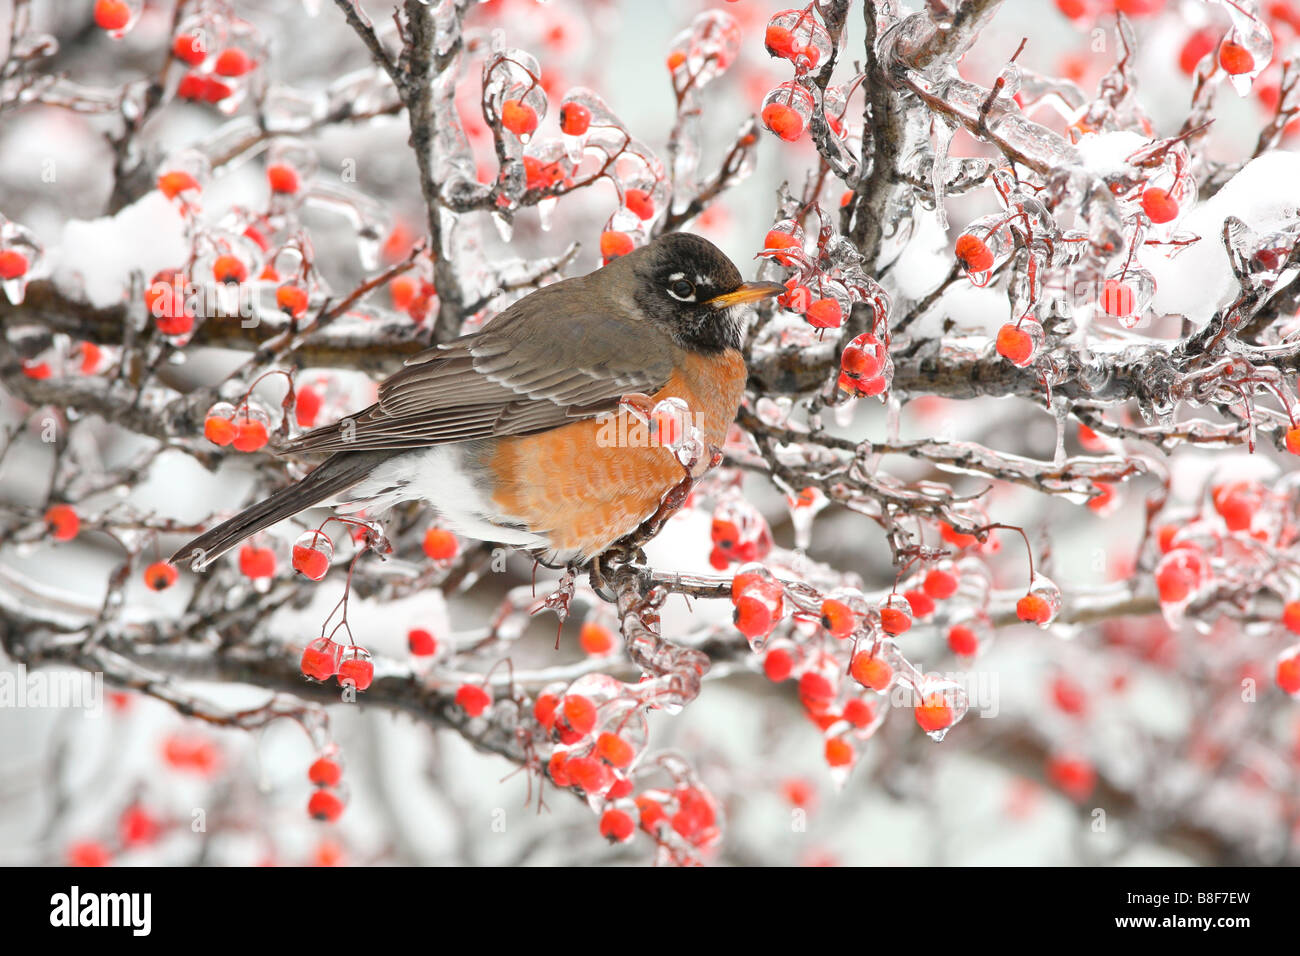 American Robin Perched in Hawthorn Berries with Ice and Snow - Stock Image